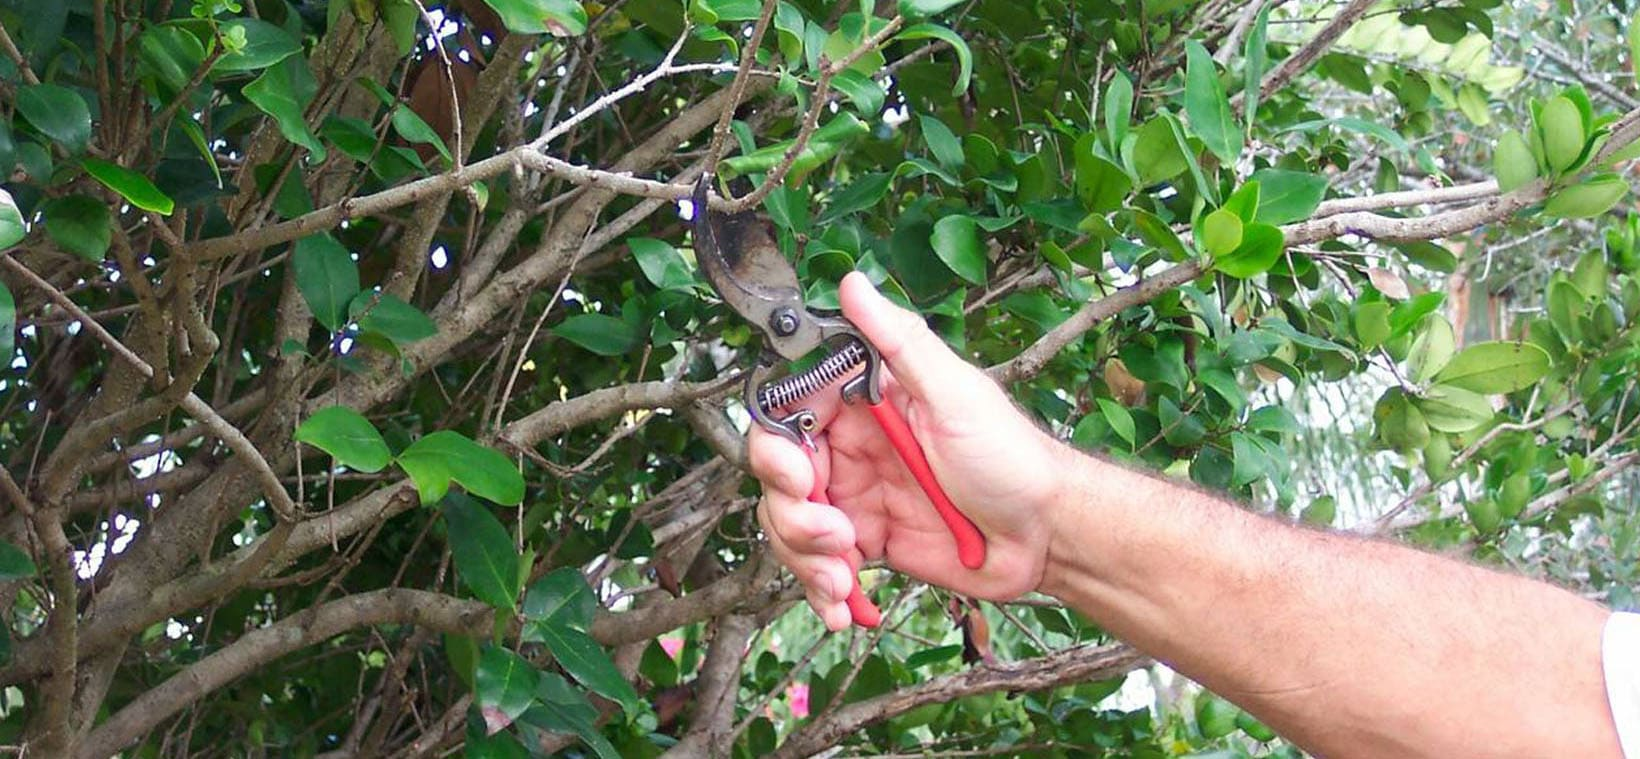 Aiello Landscape traning pruning